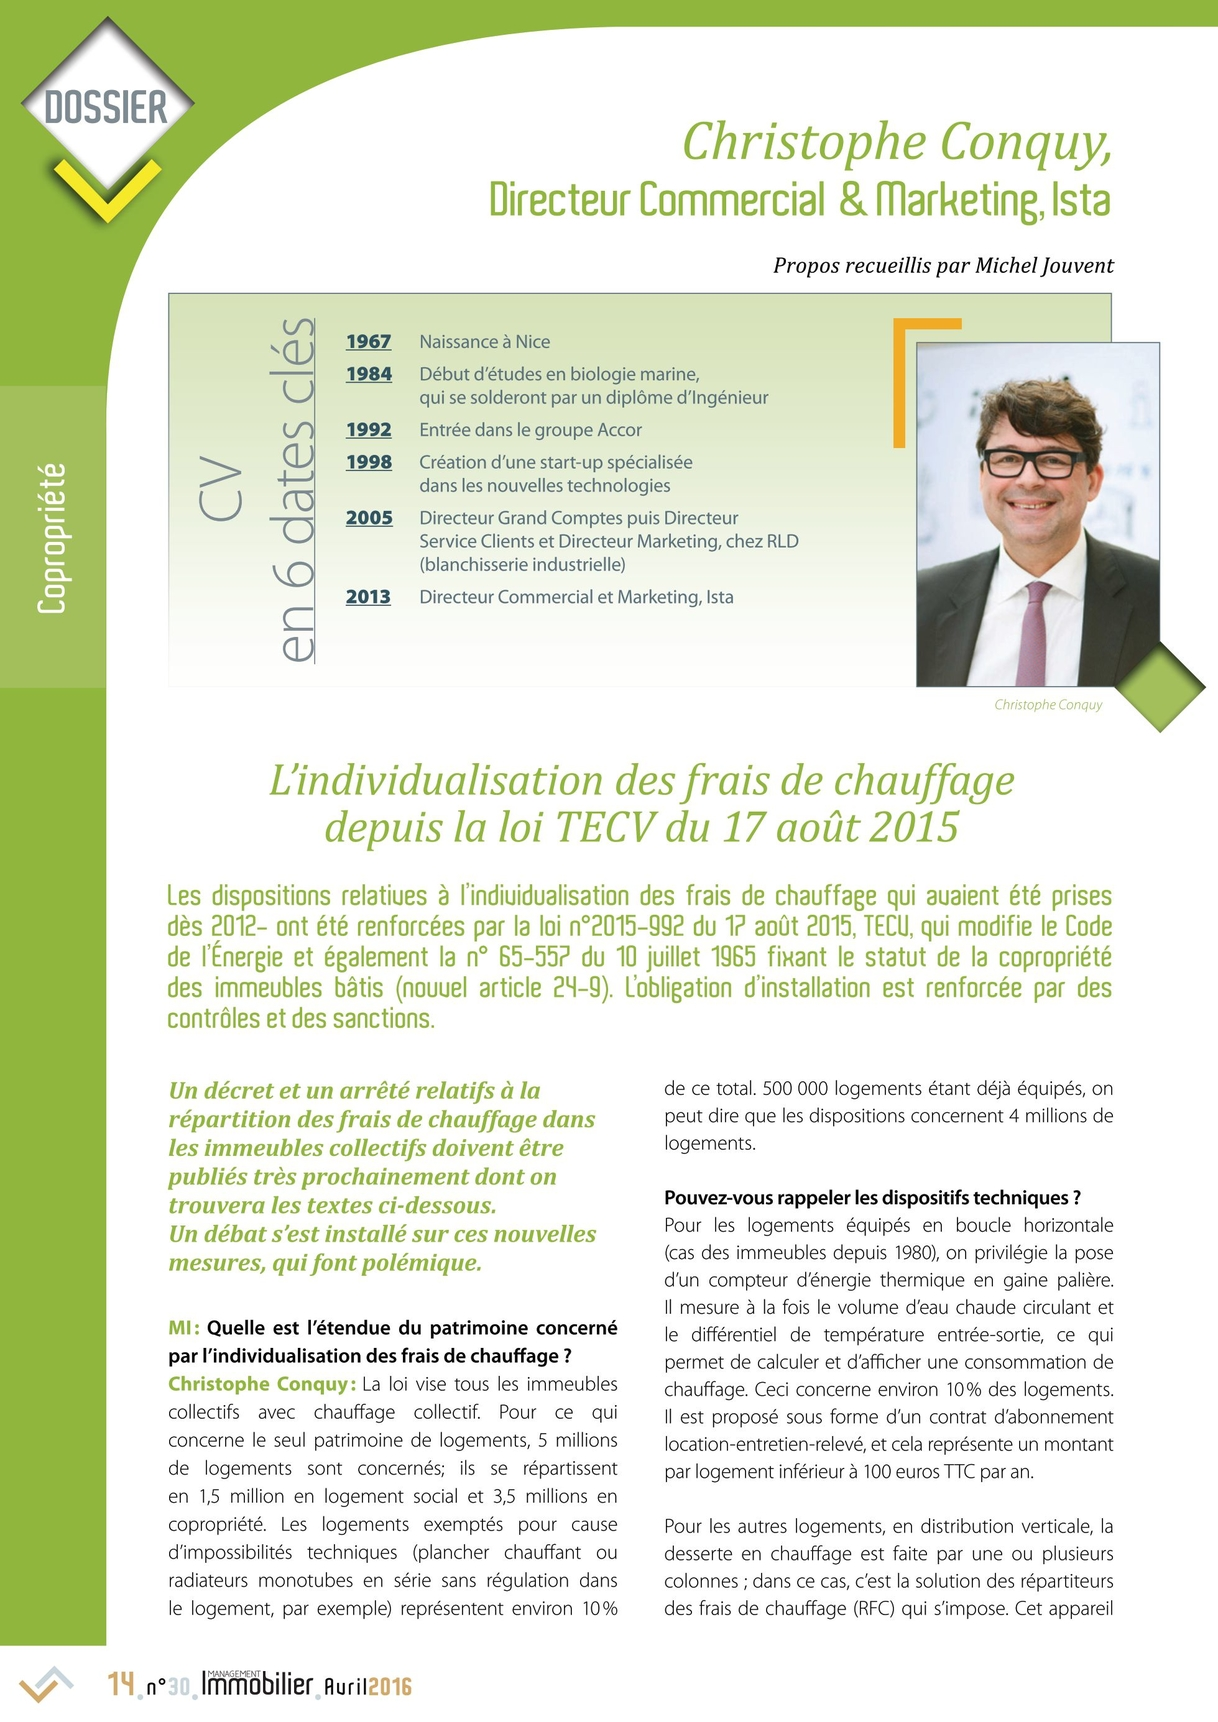 Management immobilier n30 avril 2016 14 15 management immobilier n30 avril 2016 page 14 dossier christophe conquy directeur commercial marketing ista cv en 6 dates cls coproprit propos thecheapjerseys Image collections